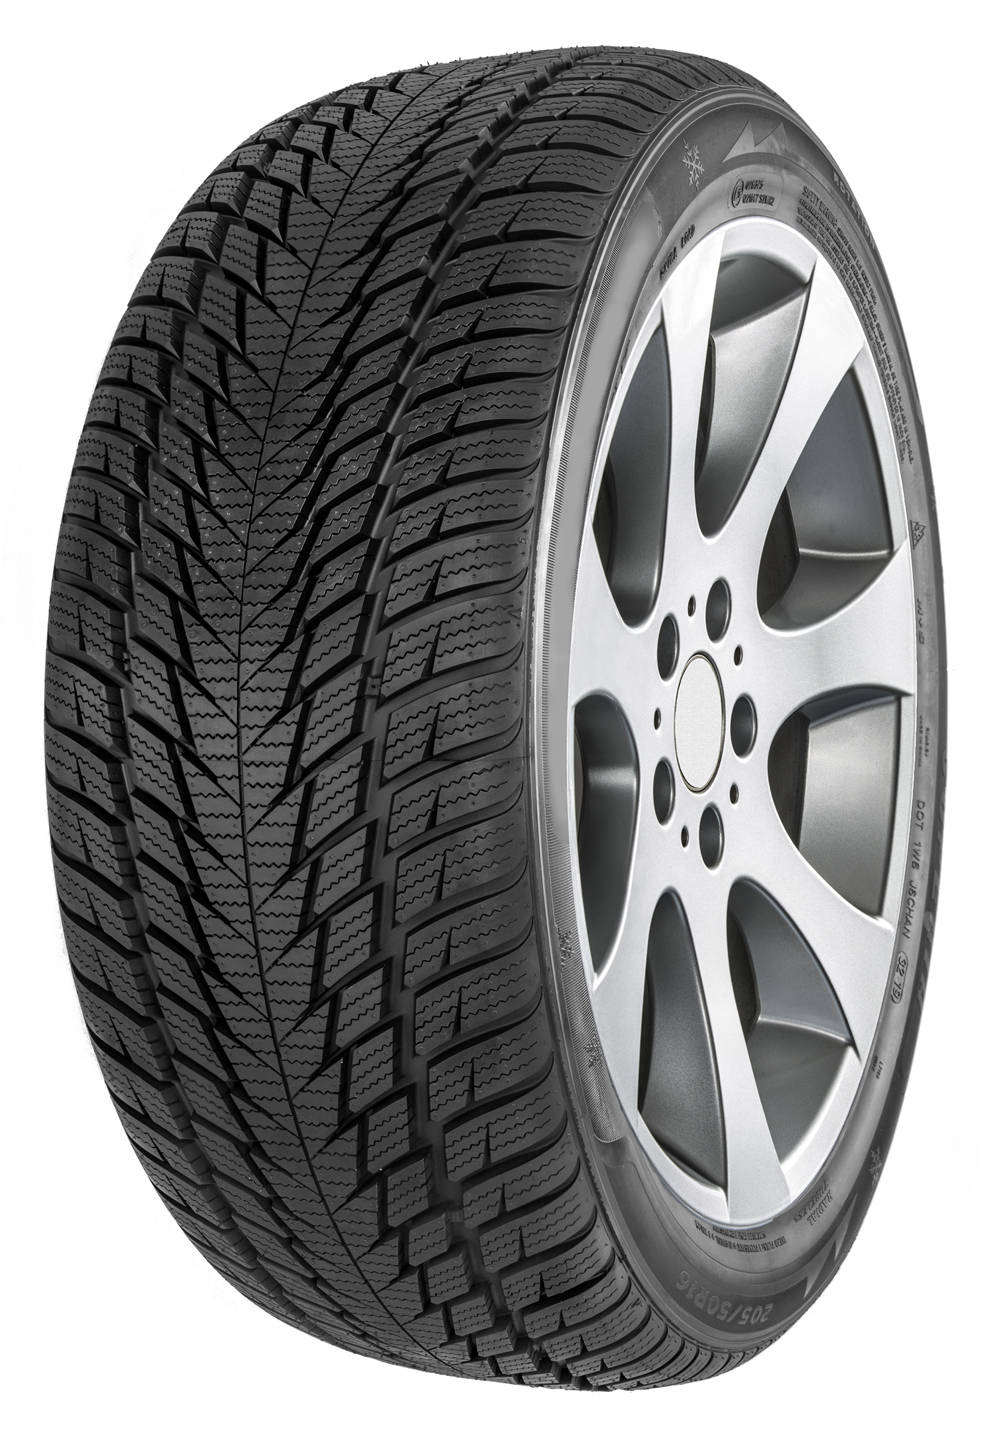 Gomme Nuove Atlas 225/45 R18 95V POLARBEAR UHP2 XL M+S pneumatici nuovi Invernale